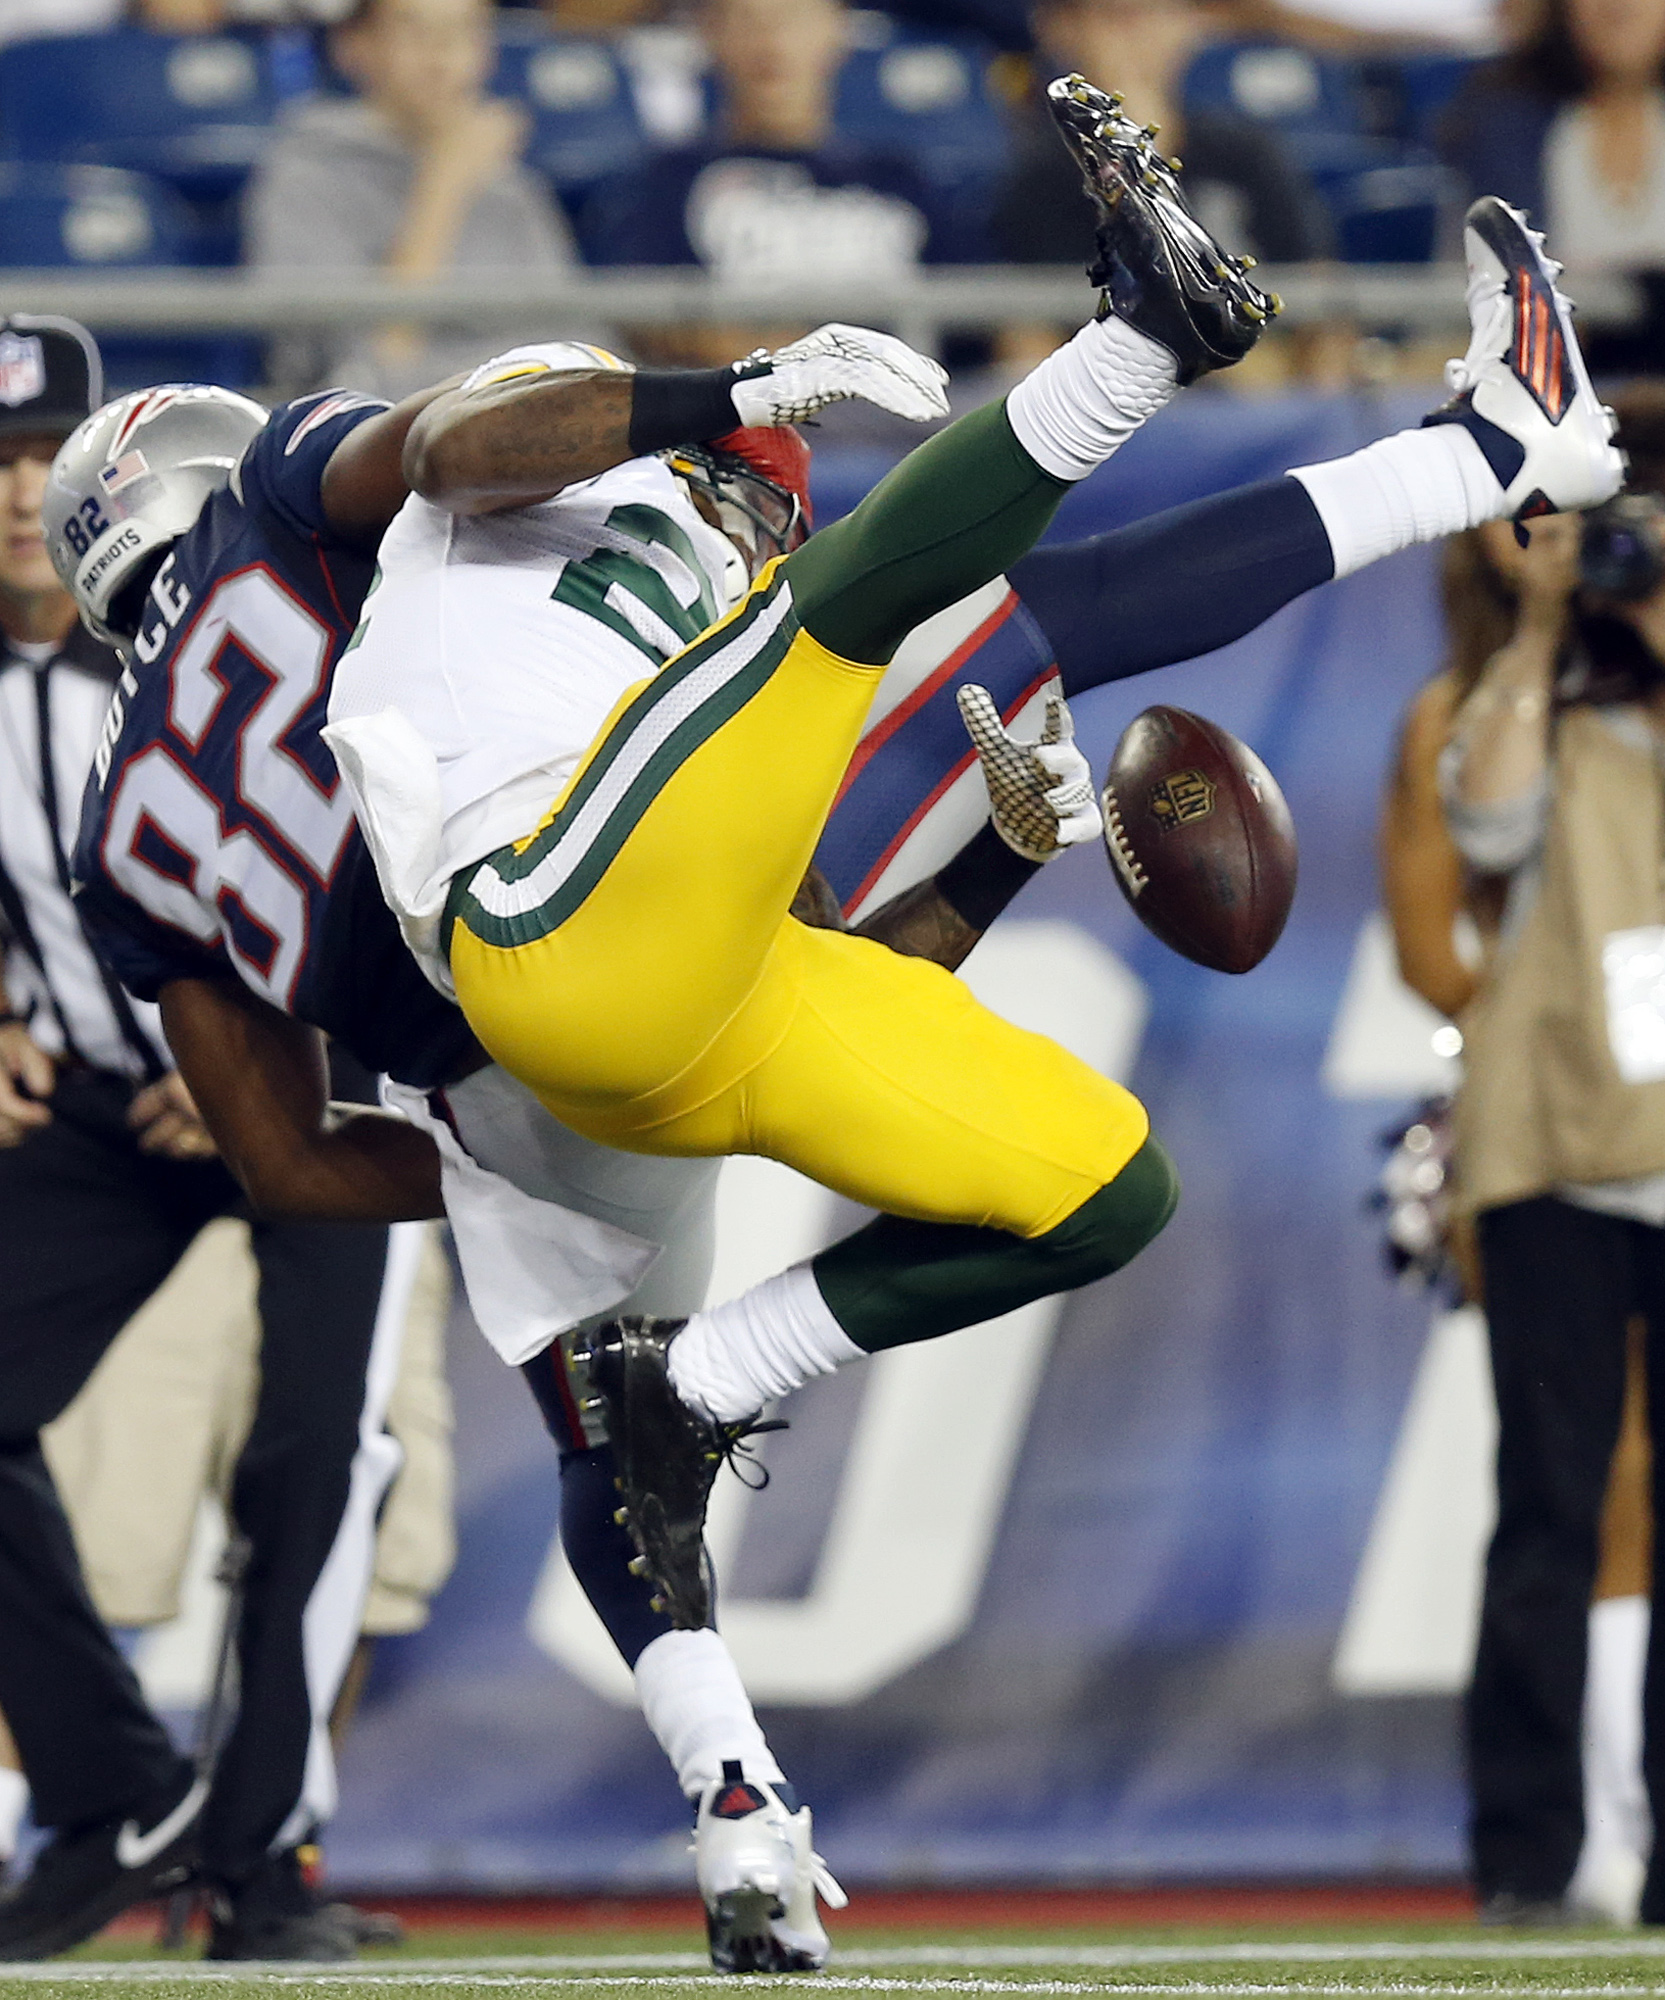 Green Bay Packers cornerback Quinten Rollins (24) breaks up a pass intended for New England Patriots wide receiver Josh Boyce (82) during the first half of an NFL preseason football game Thursday, Aug. 13, 2015, in Foxborough, Mass.  (AP Photo/Michael Dwy